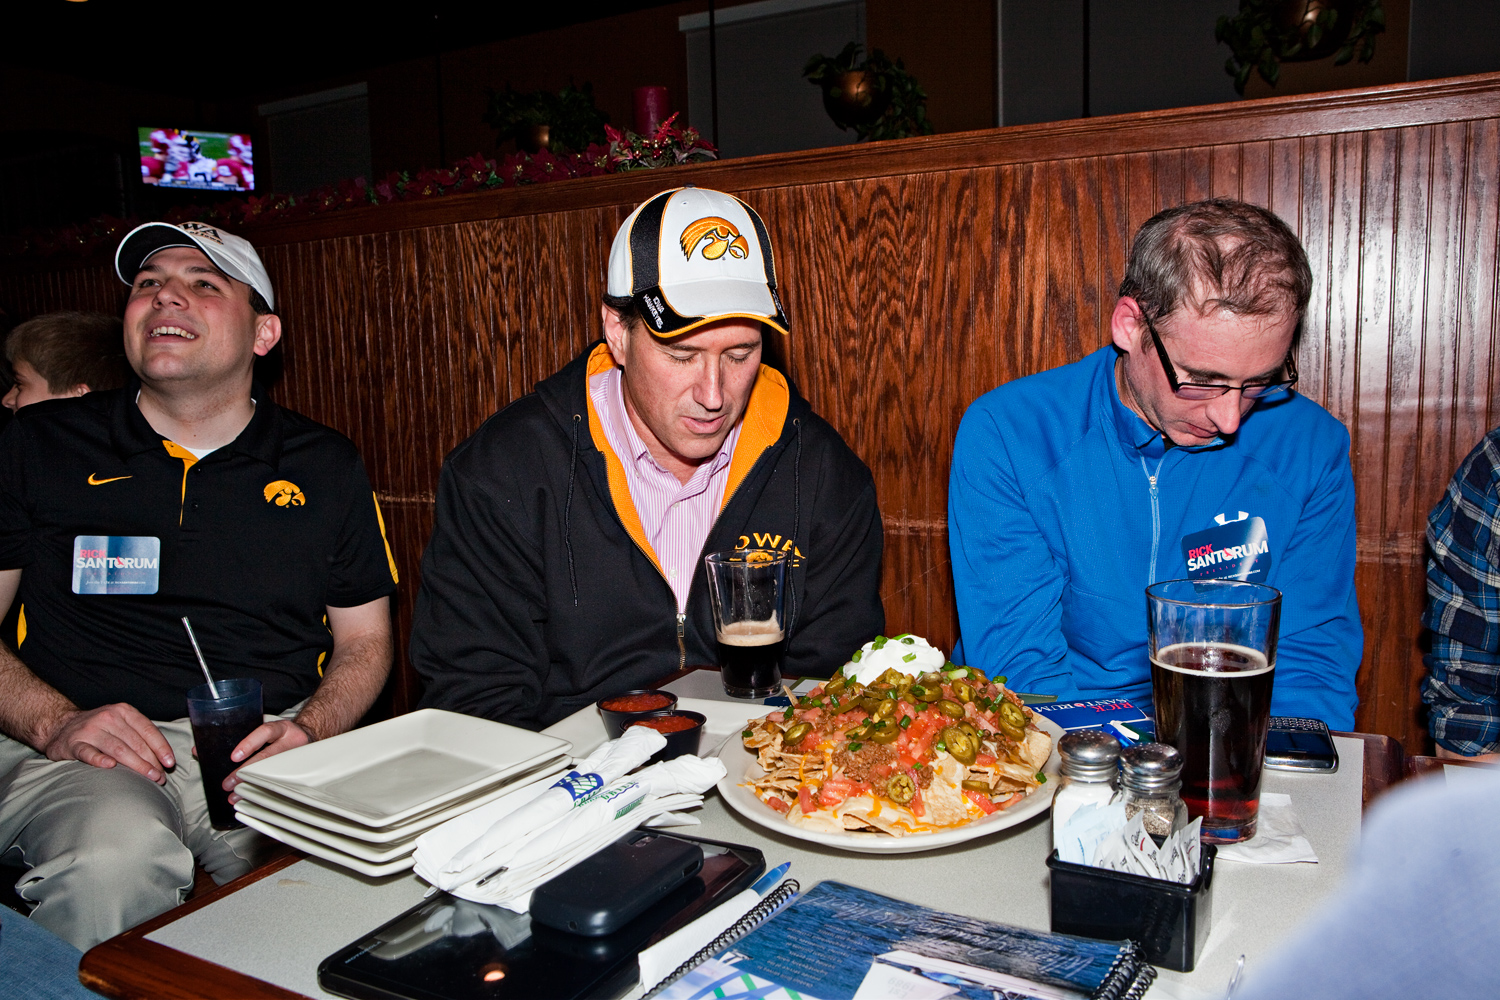 Rick Santorum prays before a meal of nachos at the Okoboji Grill while he campaigns in Johnston, Iowa on December 30, 2011.